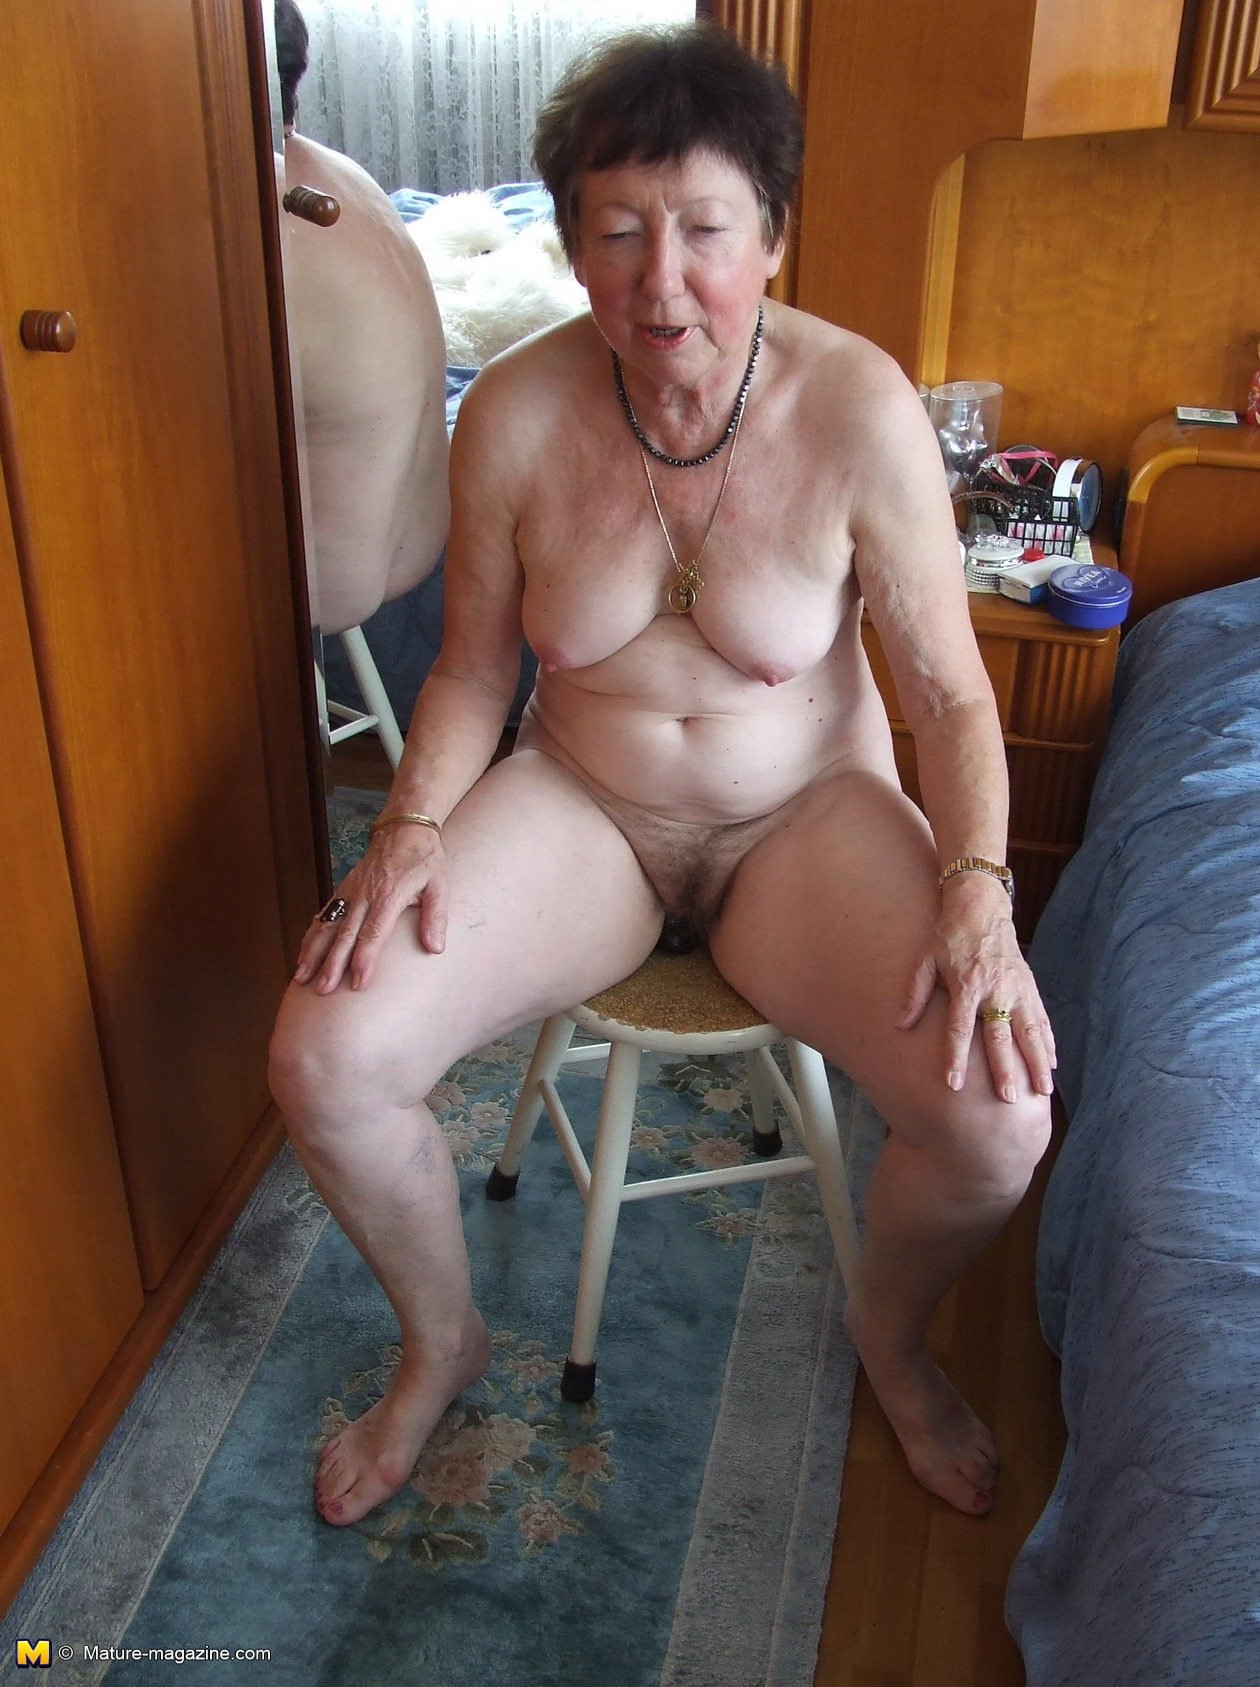 Pinay granny webcam Massage orgasm hidden camera video